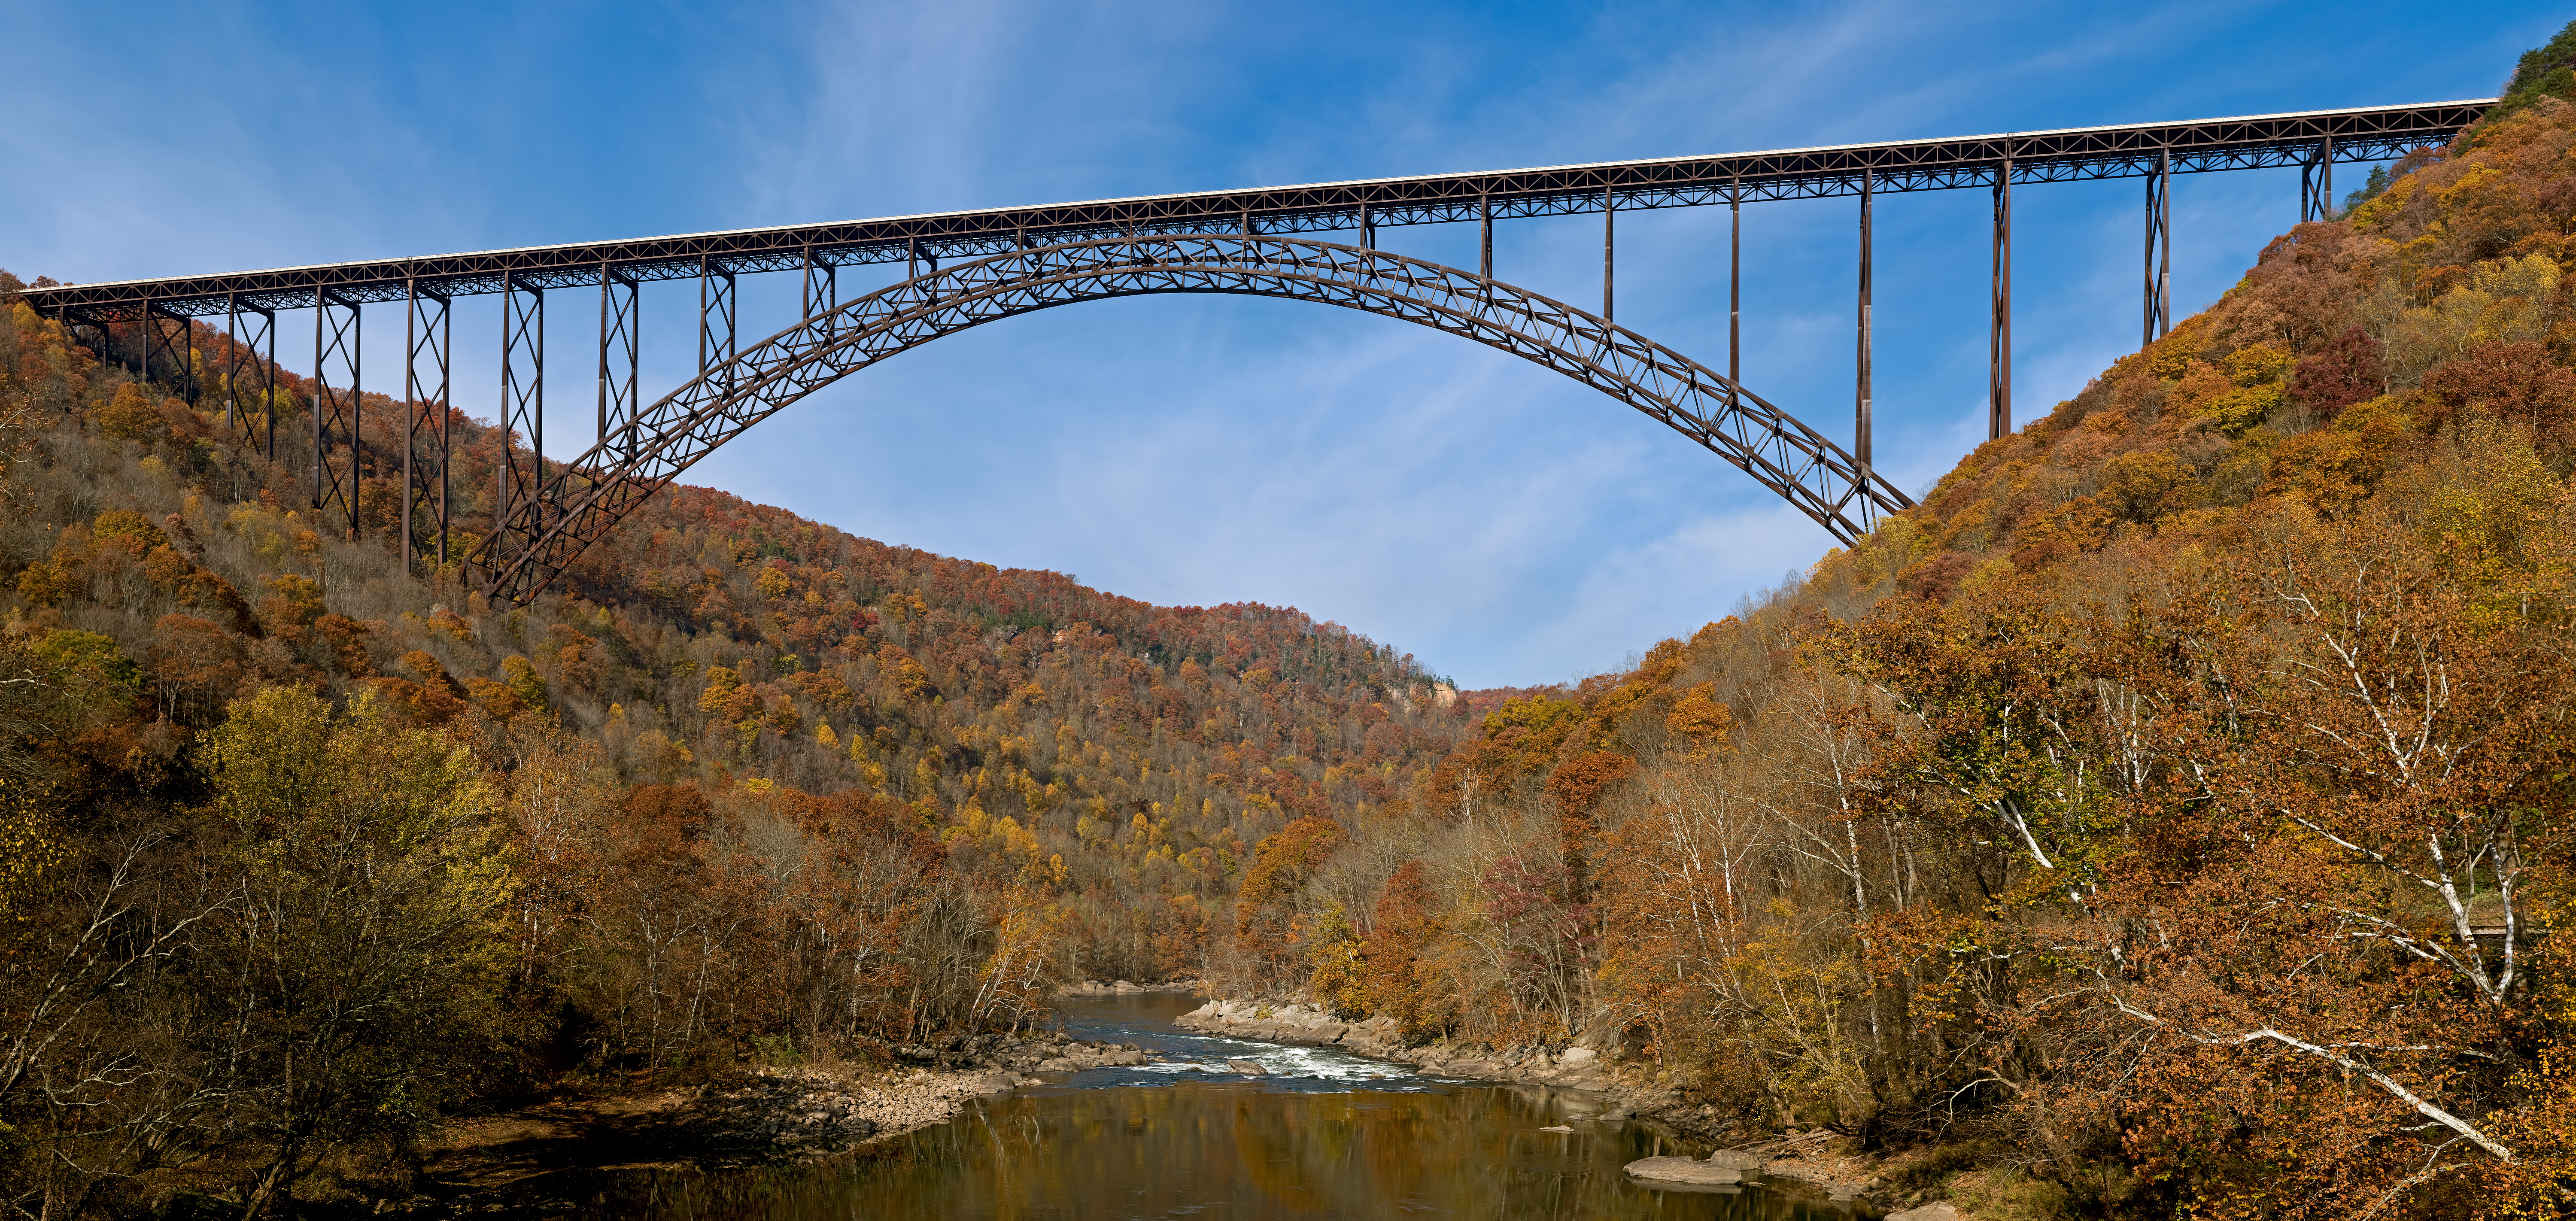 File:New River Gorge Bridge.jpg  Wikipedia